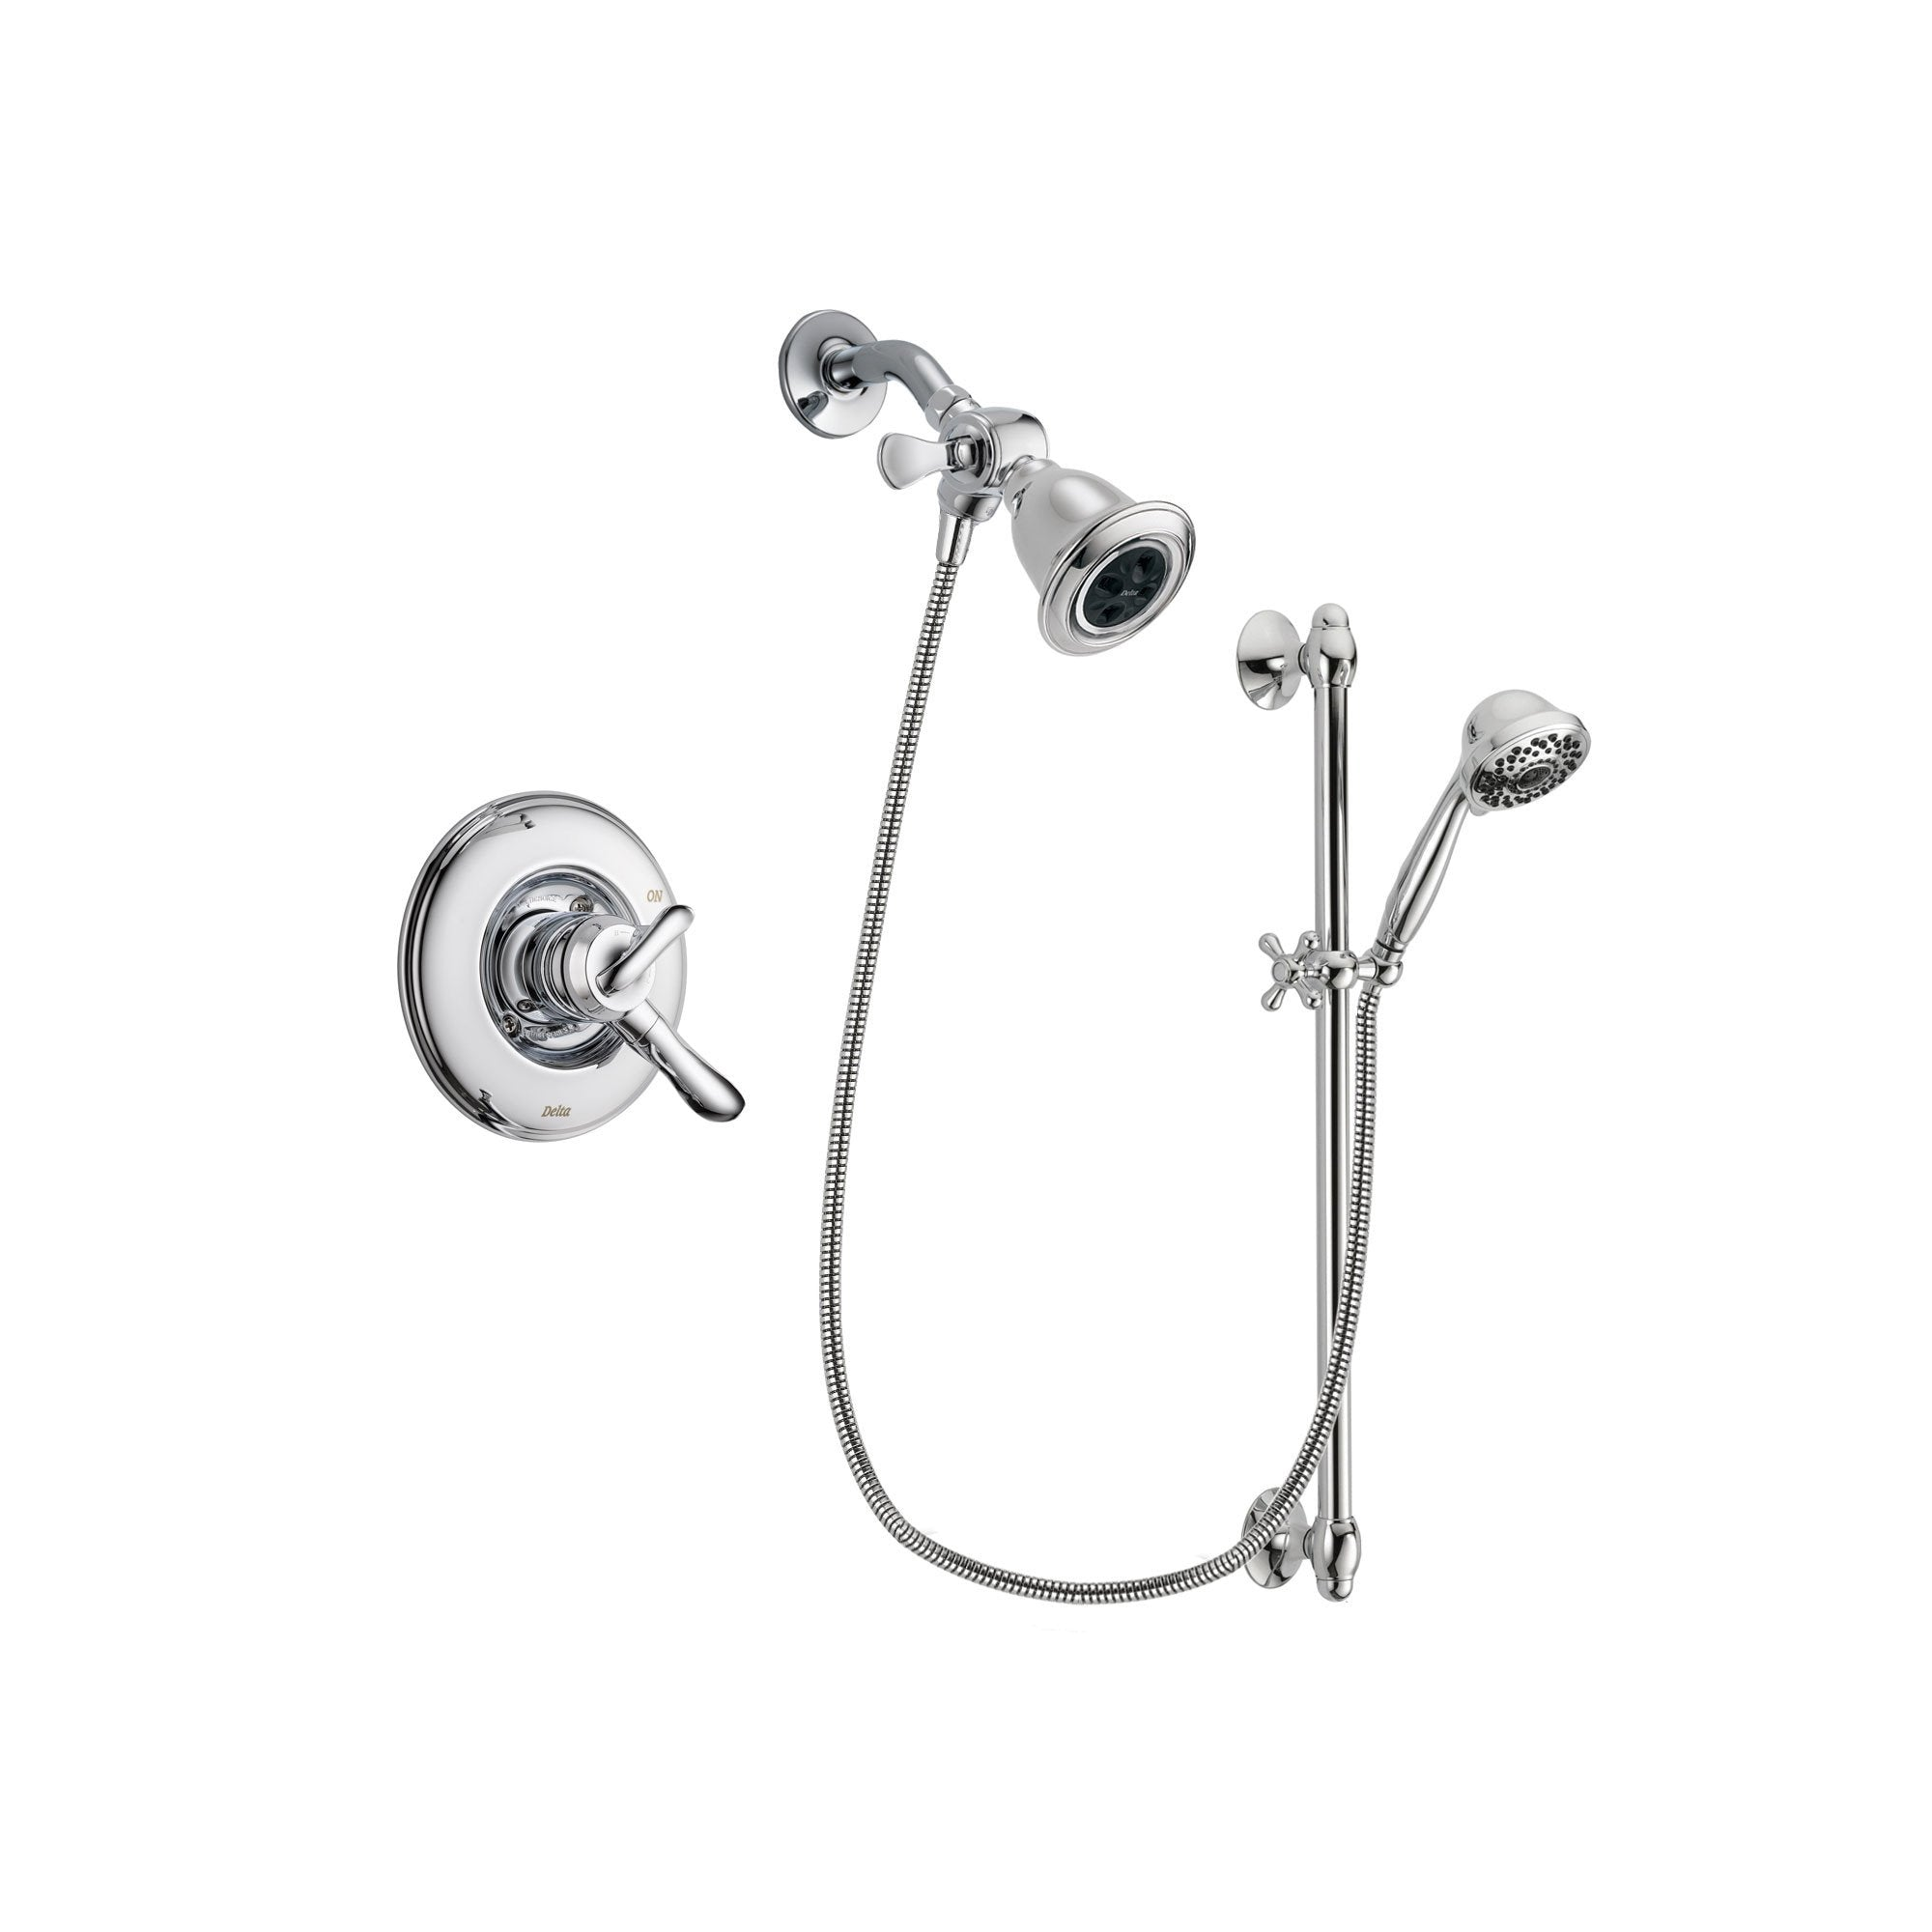 Delta Linden Chrome Shower Faucet System w/ Shower Head and Hand Shower DSP0626V